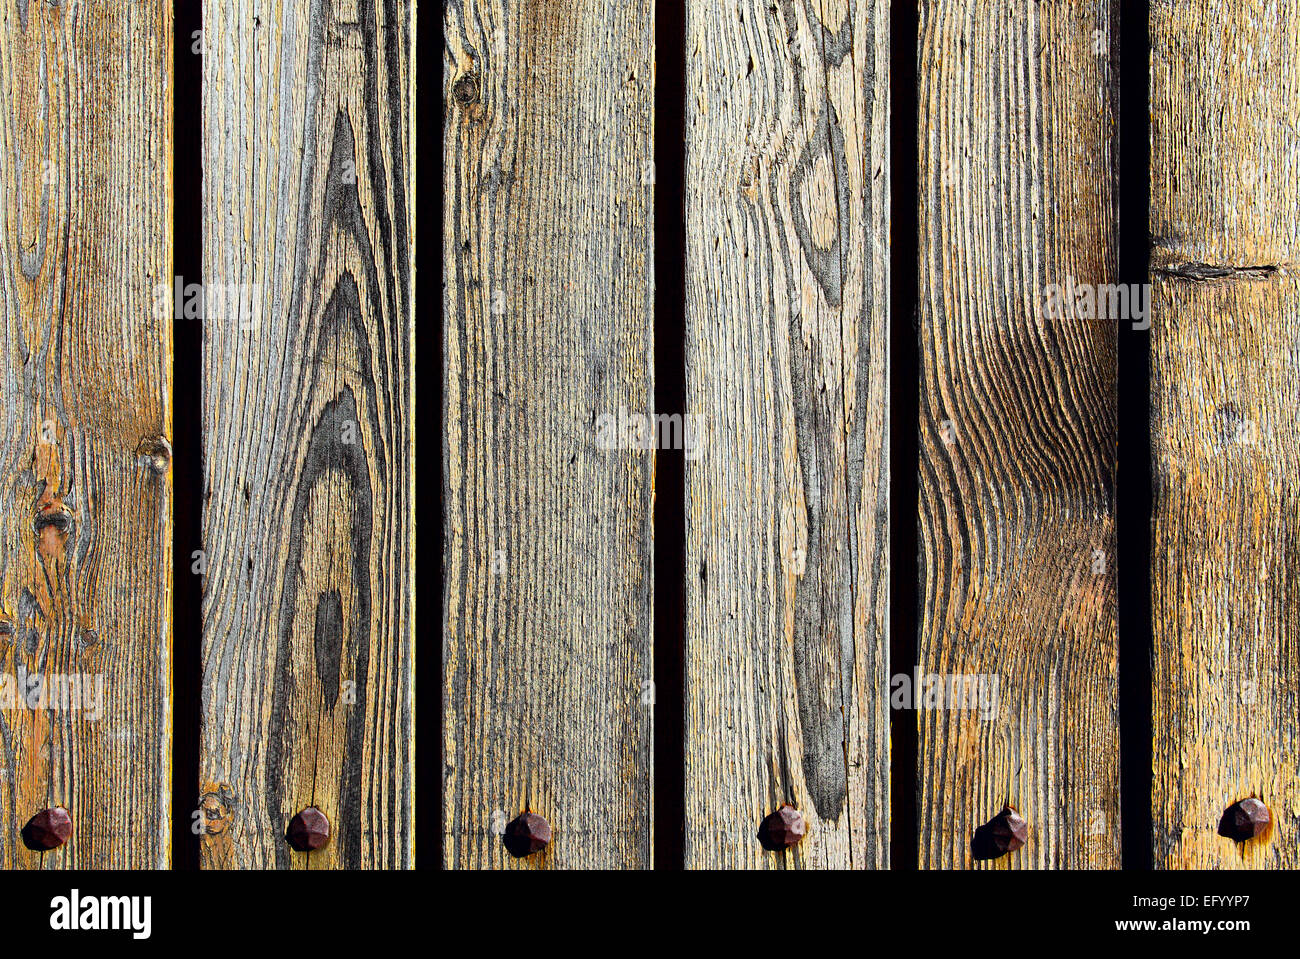 Texture of old wooden planks close-up - Stock Image